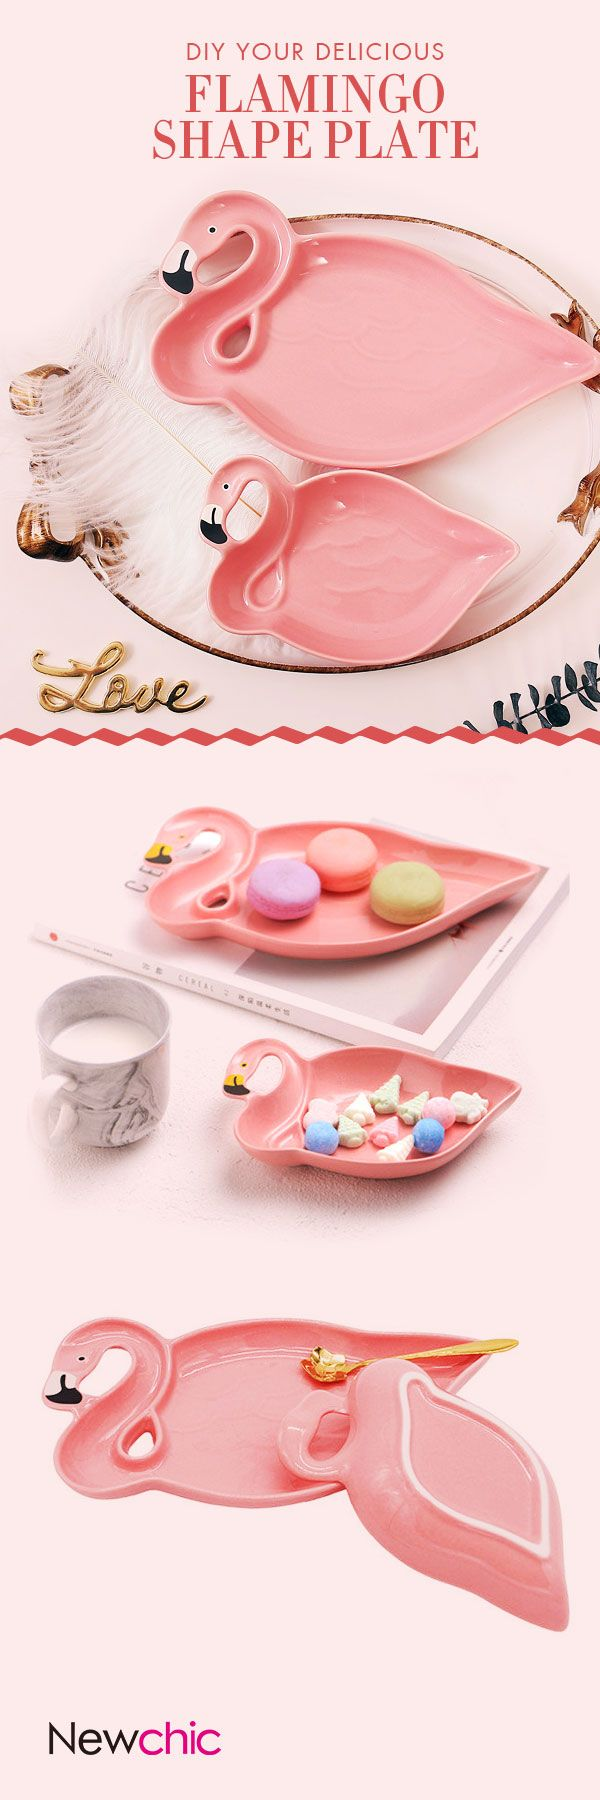 US$8.95Ceramic Snacks Dish Breakfast Tray Candy Pink Flamingo Shape Dessert Fruit Plate#newchic#kitchen#pink#christmas